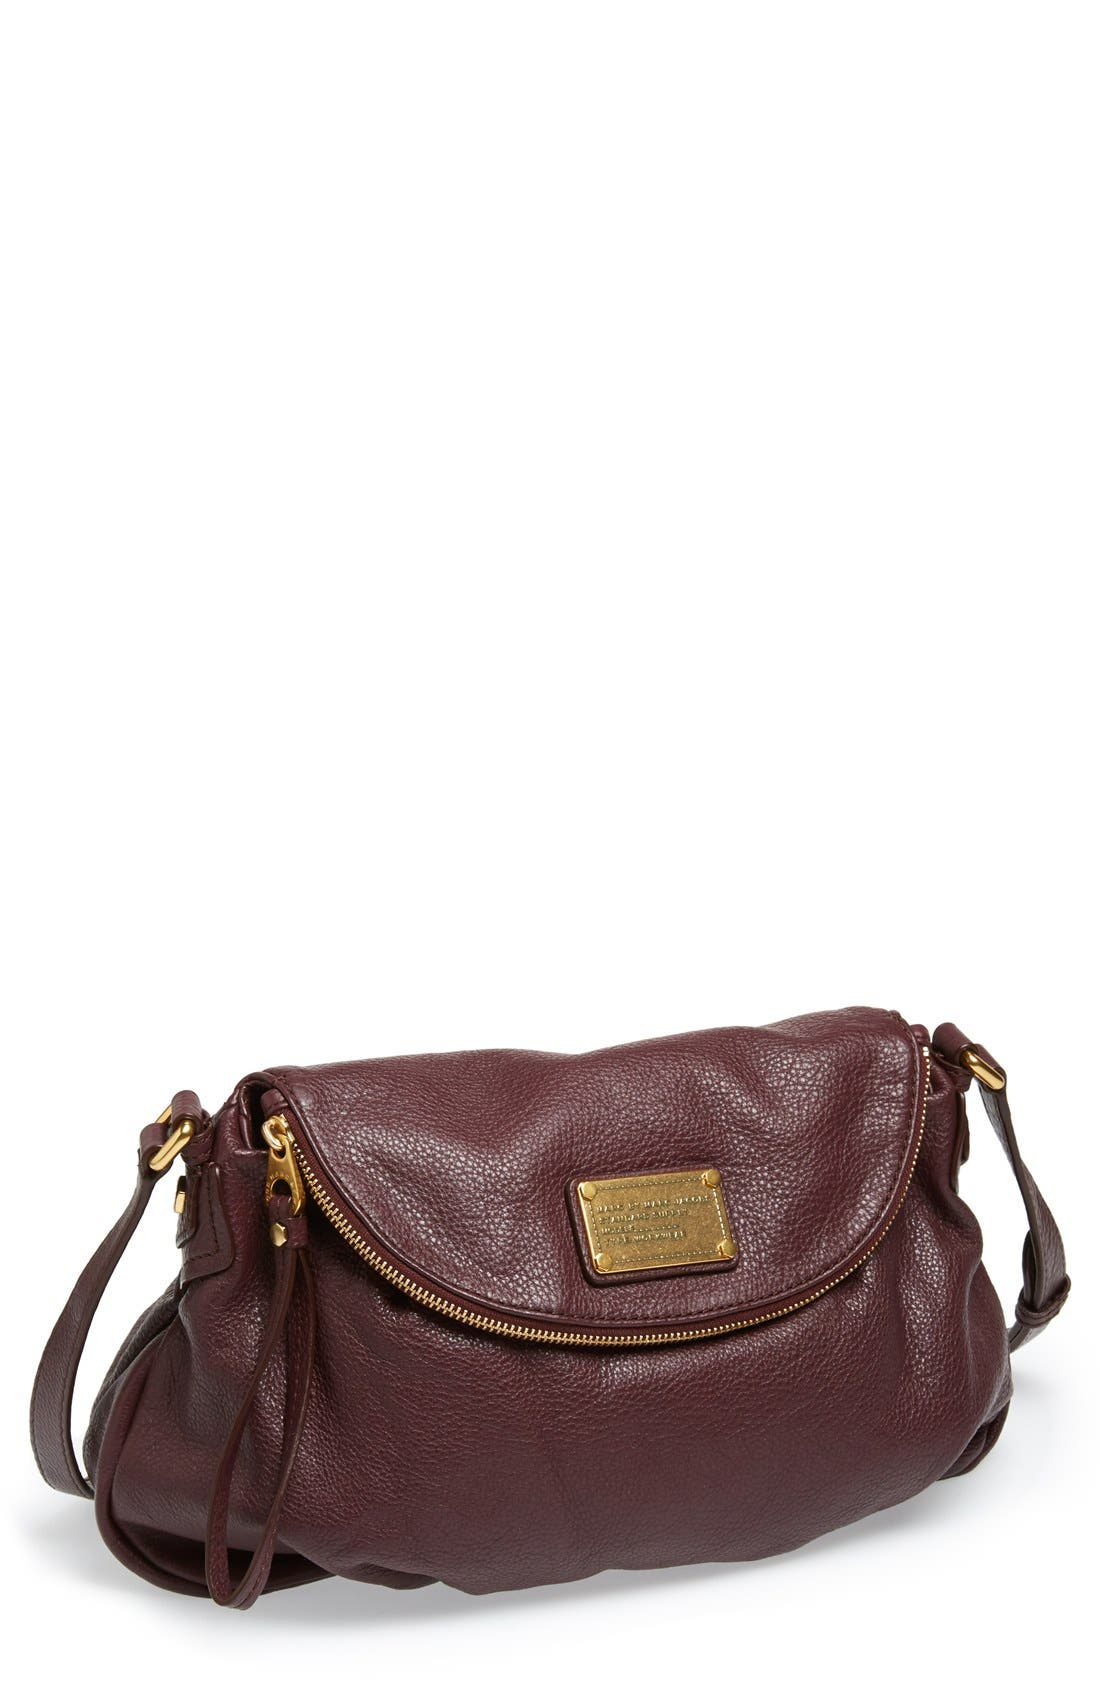 MARC BY MARC JACOBS 'Classic Q - Natasha' Crossbody Bag,                             Main thumbnail 7, color,